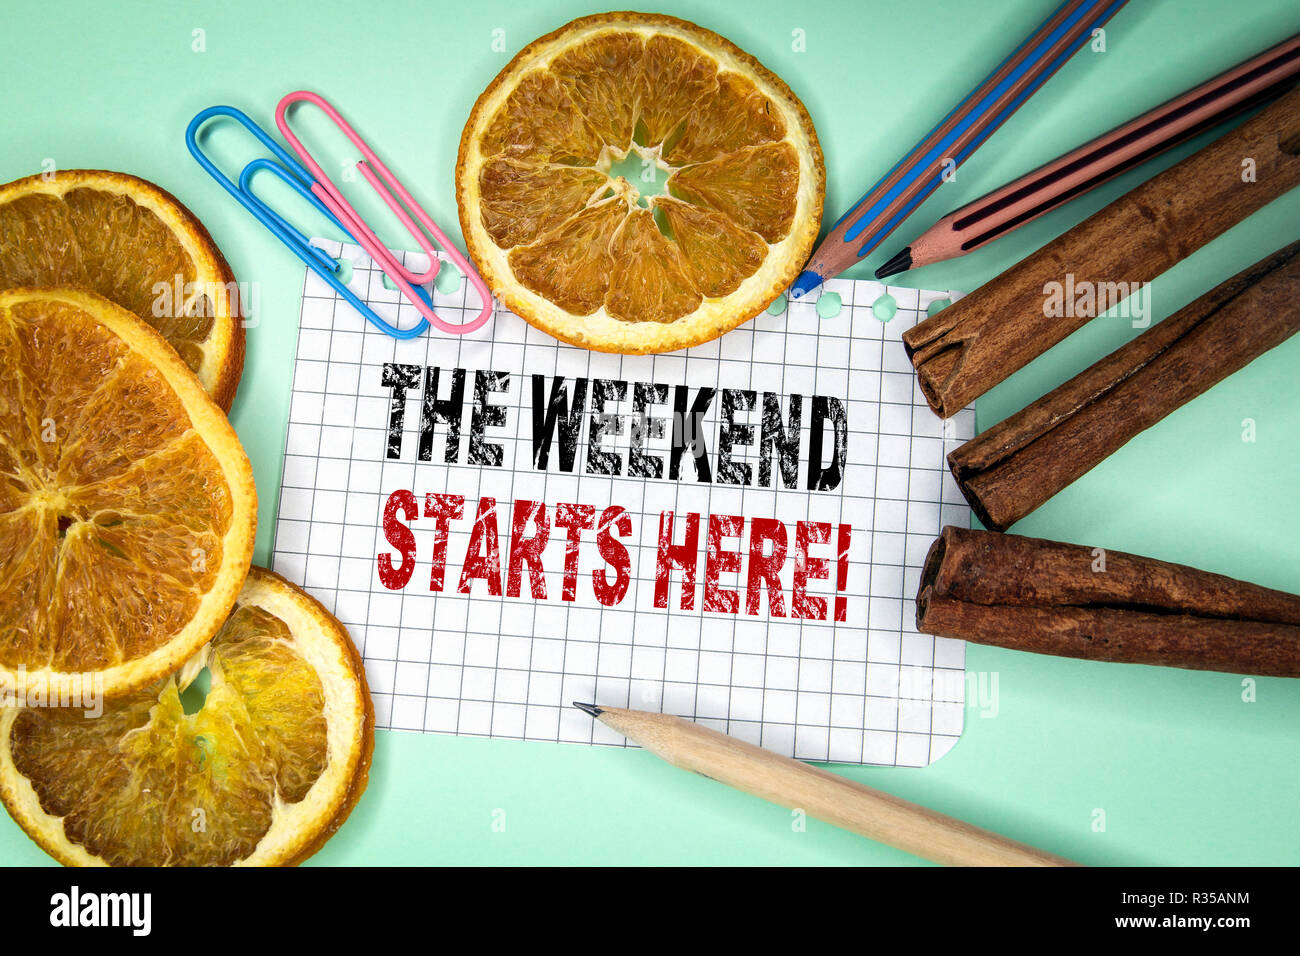 The Weekend Starts Here - Stock Image